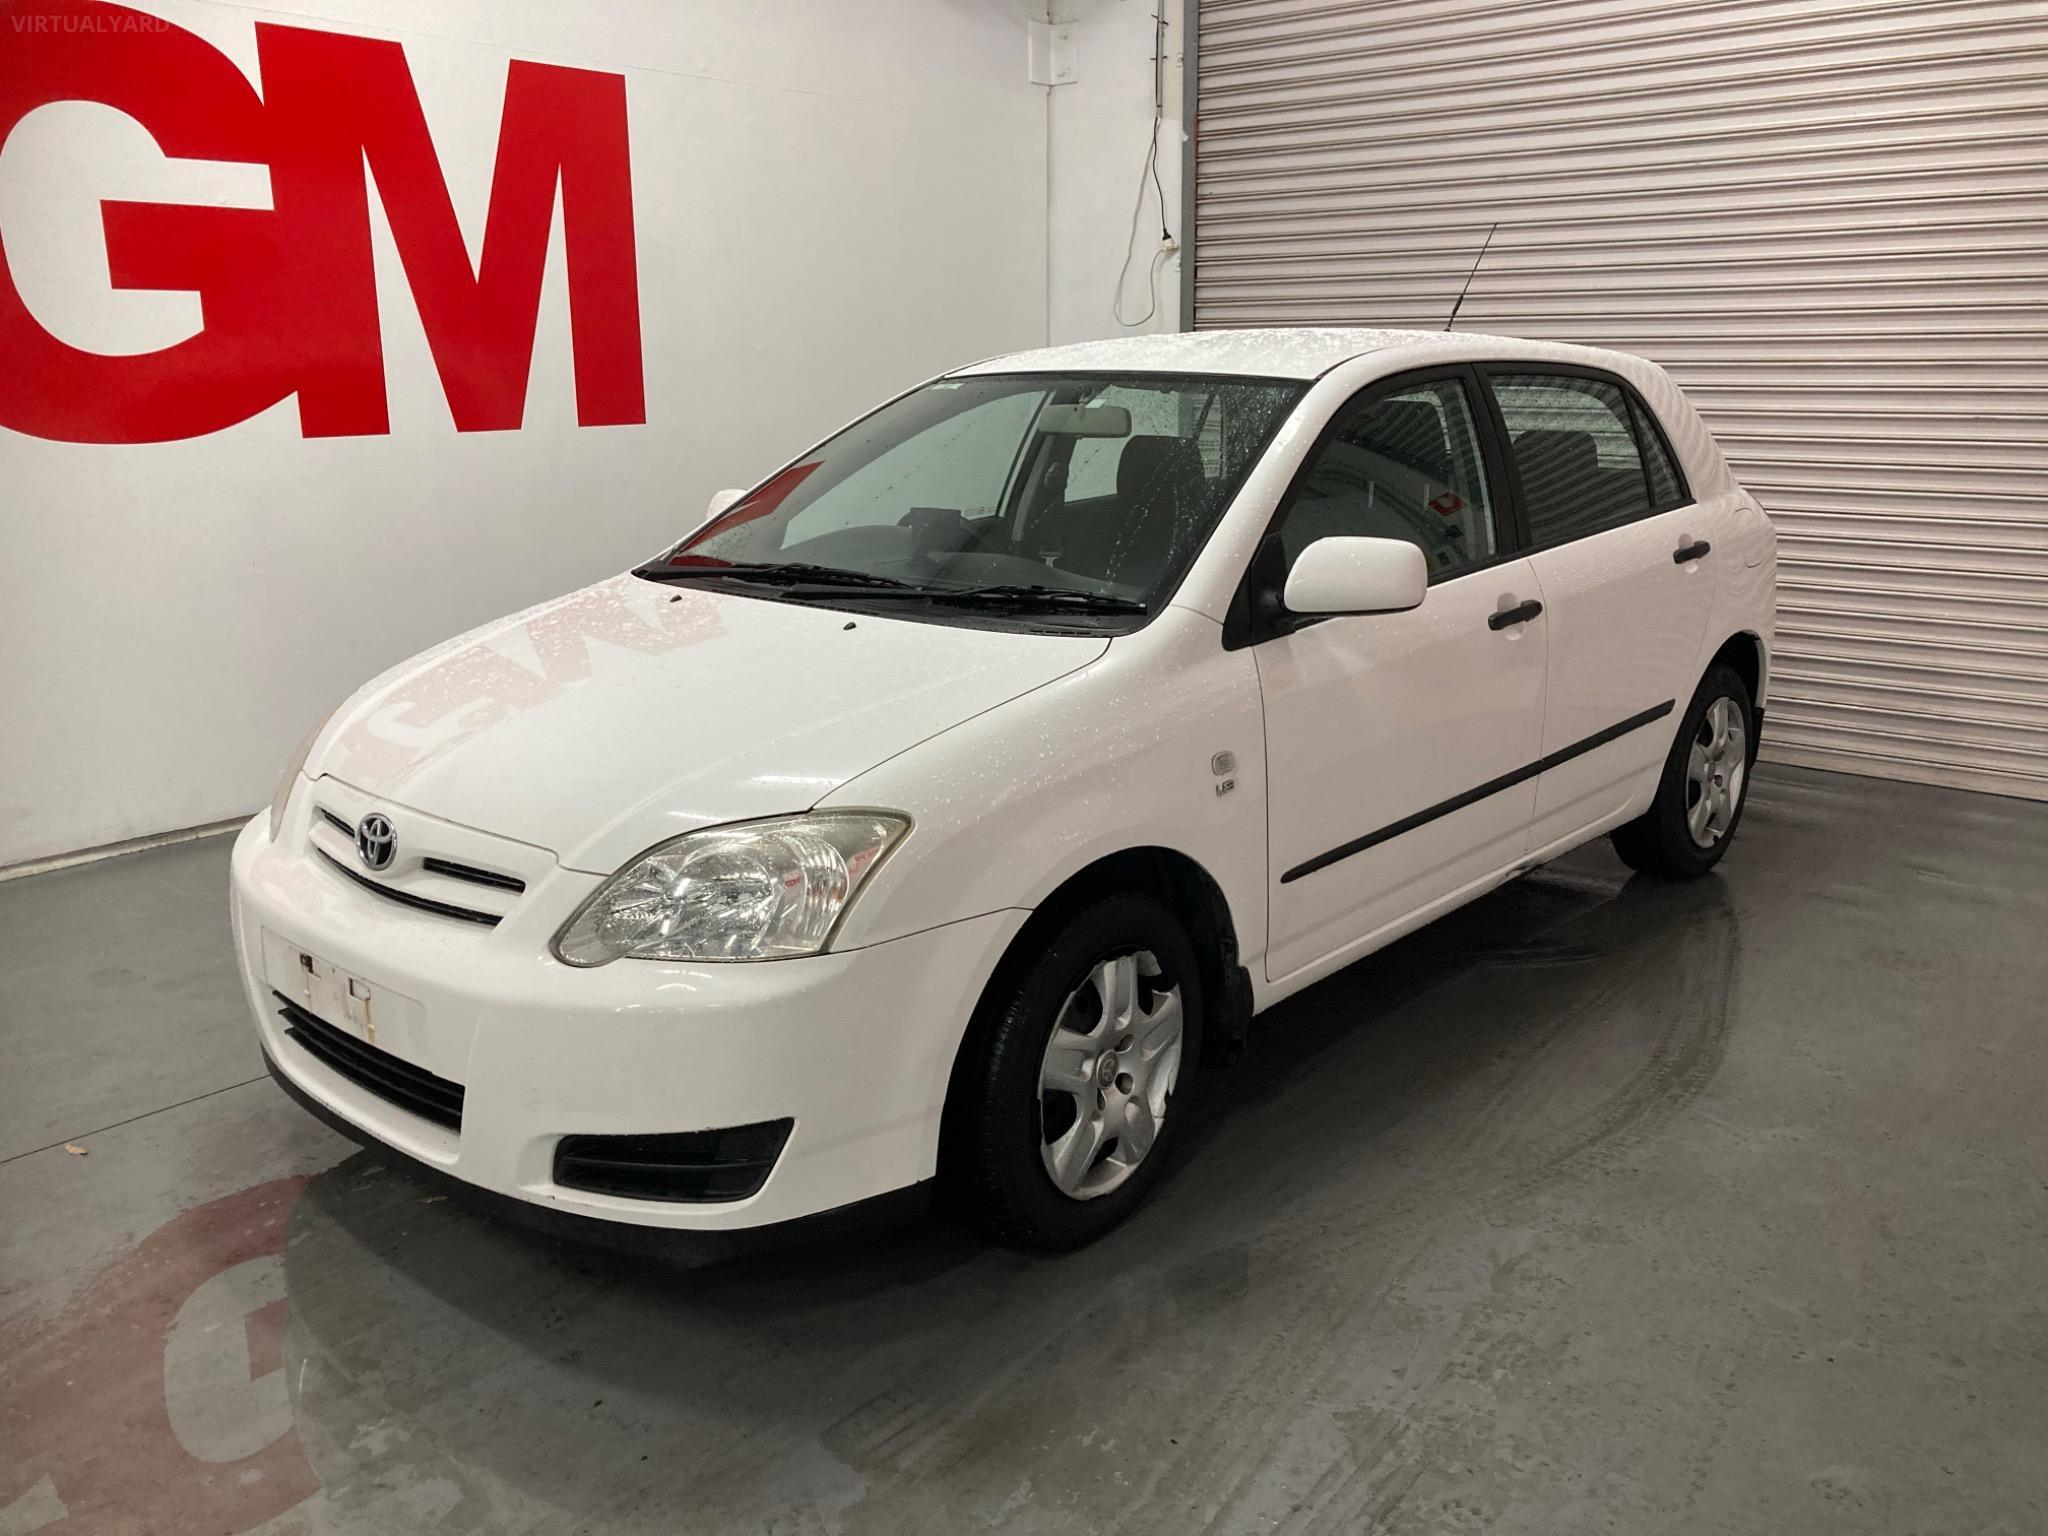 2004 Toyota Corolla ZZE122R 5Y Ascent Hatchback 5dr Auto 4sp 1.8i (May) Picture 8